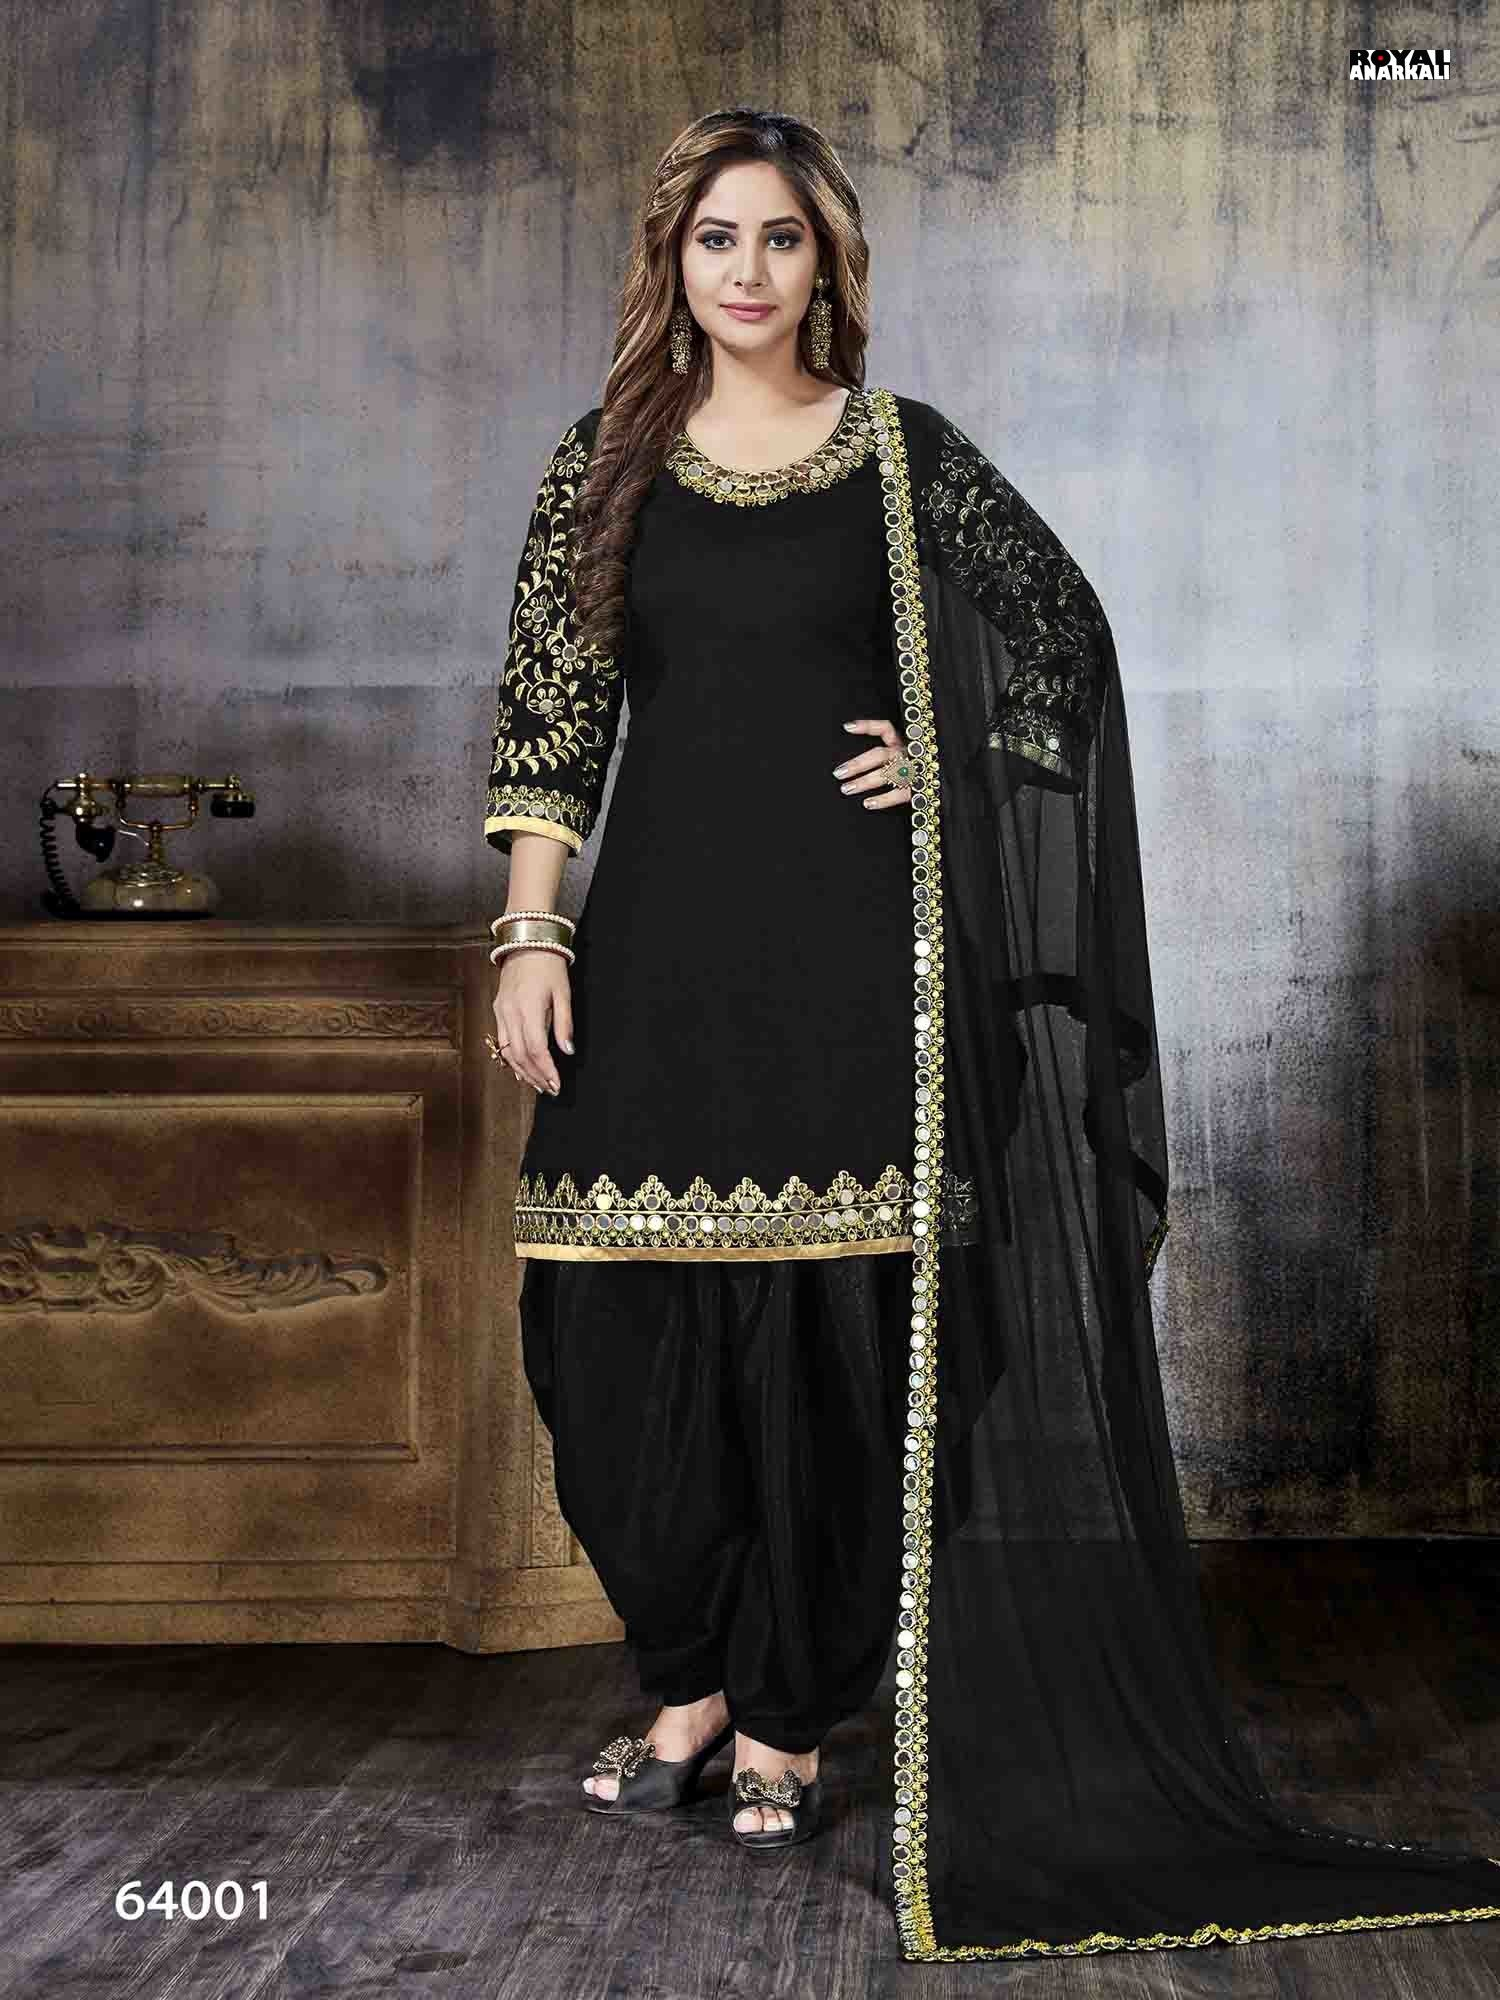 00a0f9586f Awe Inspiring Black Color Attractive Art Silk Patiala Suit With Net Dupatta